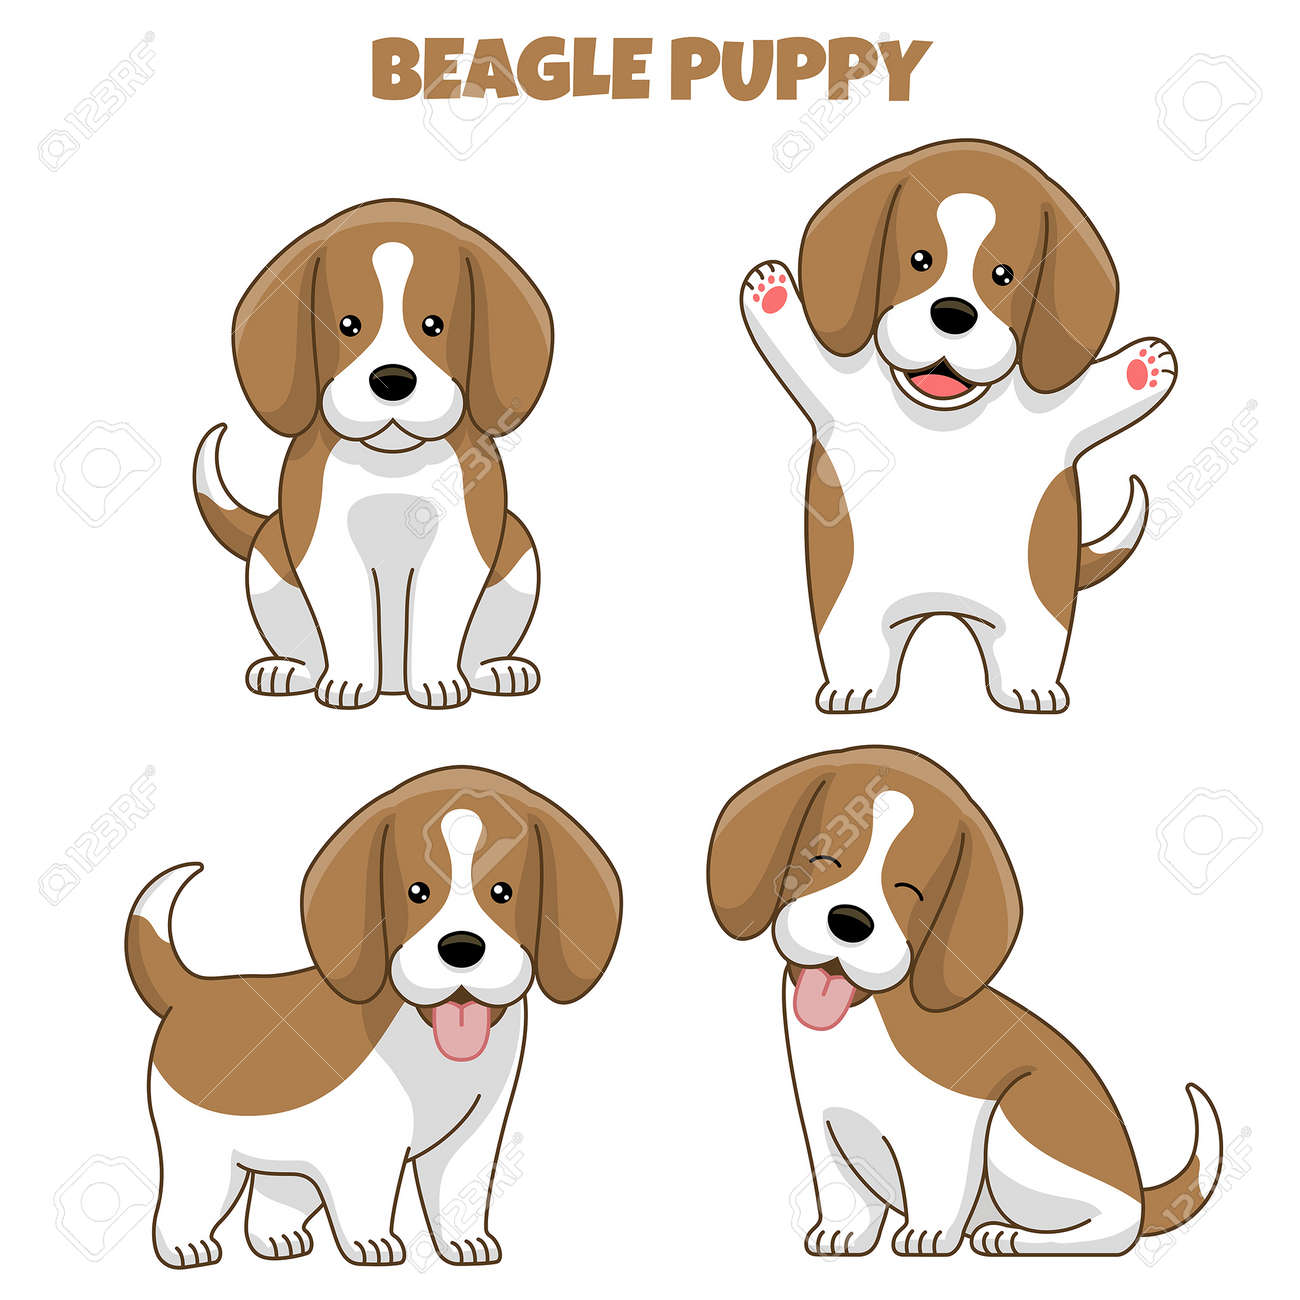 vector set of beagle dog puppy in cartoon style - 163987833